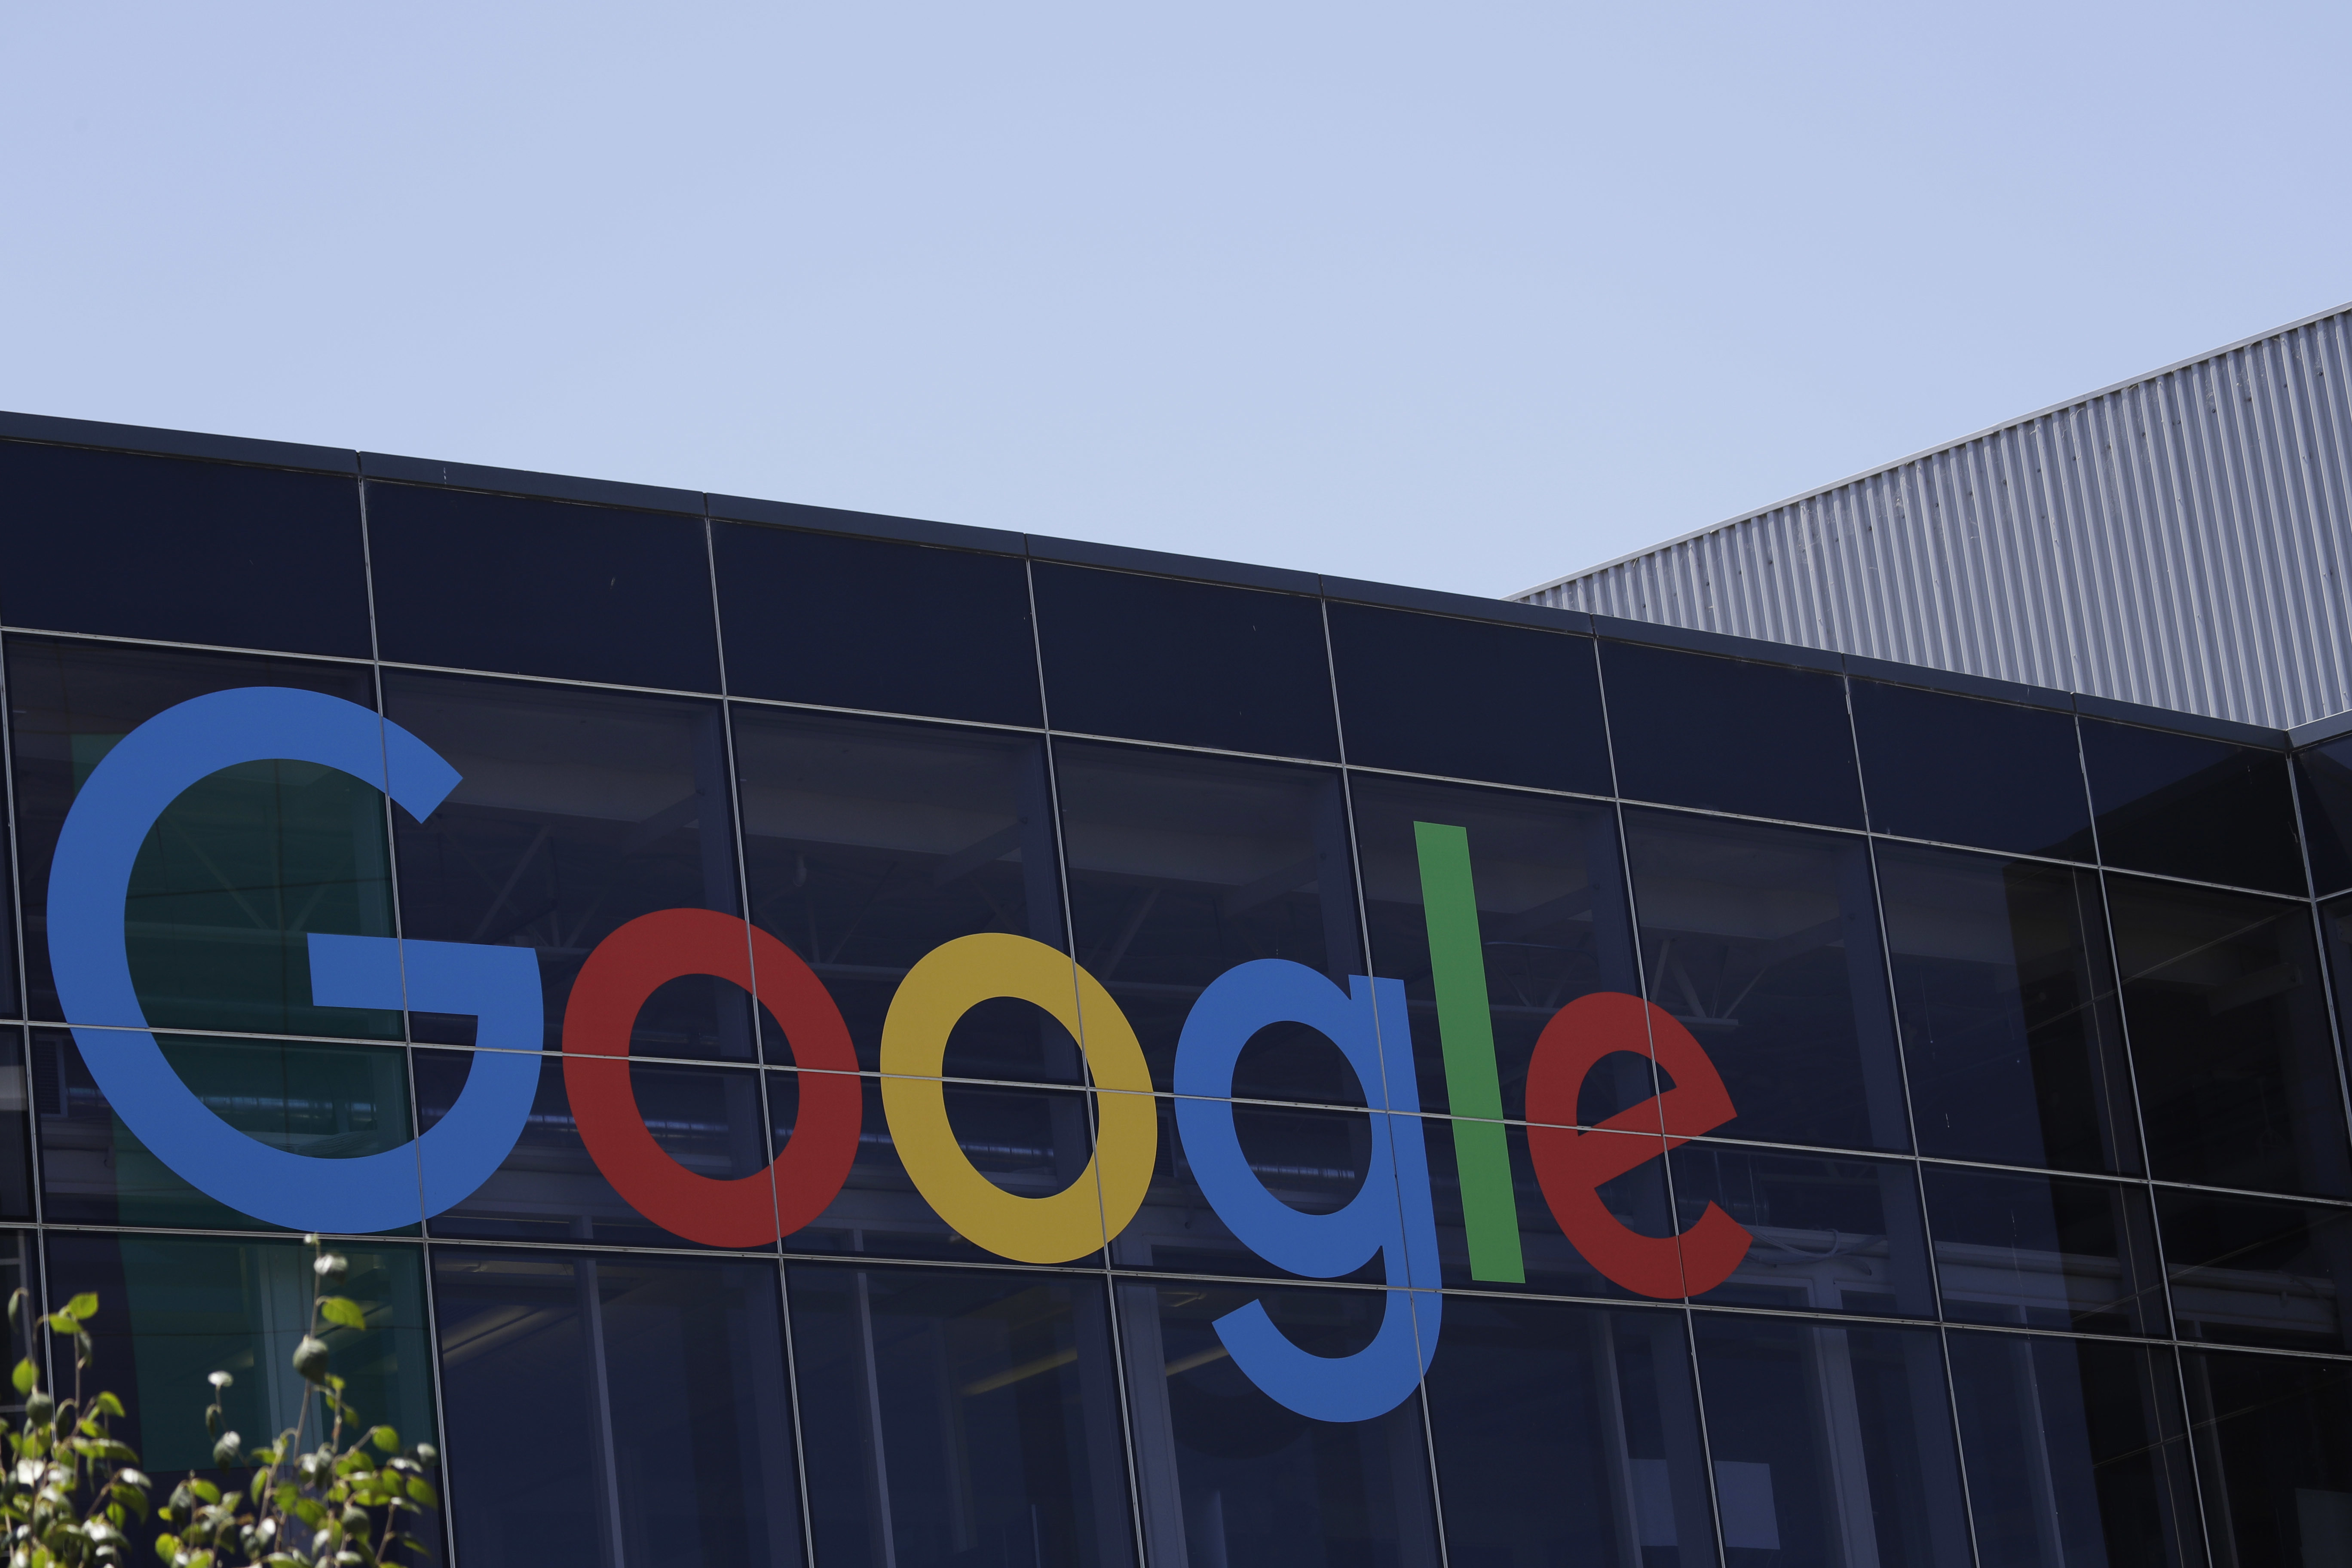 FILE - This July 19, 2016, file photo shows the Google logo at the company's headquarters in Mountain View, Calif.